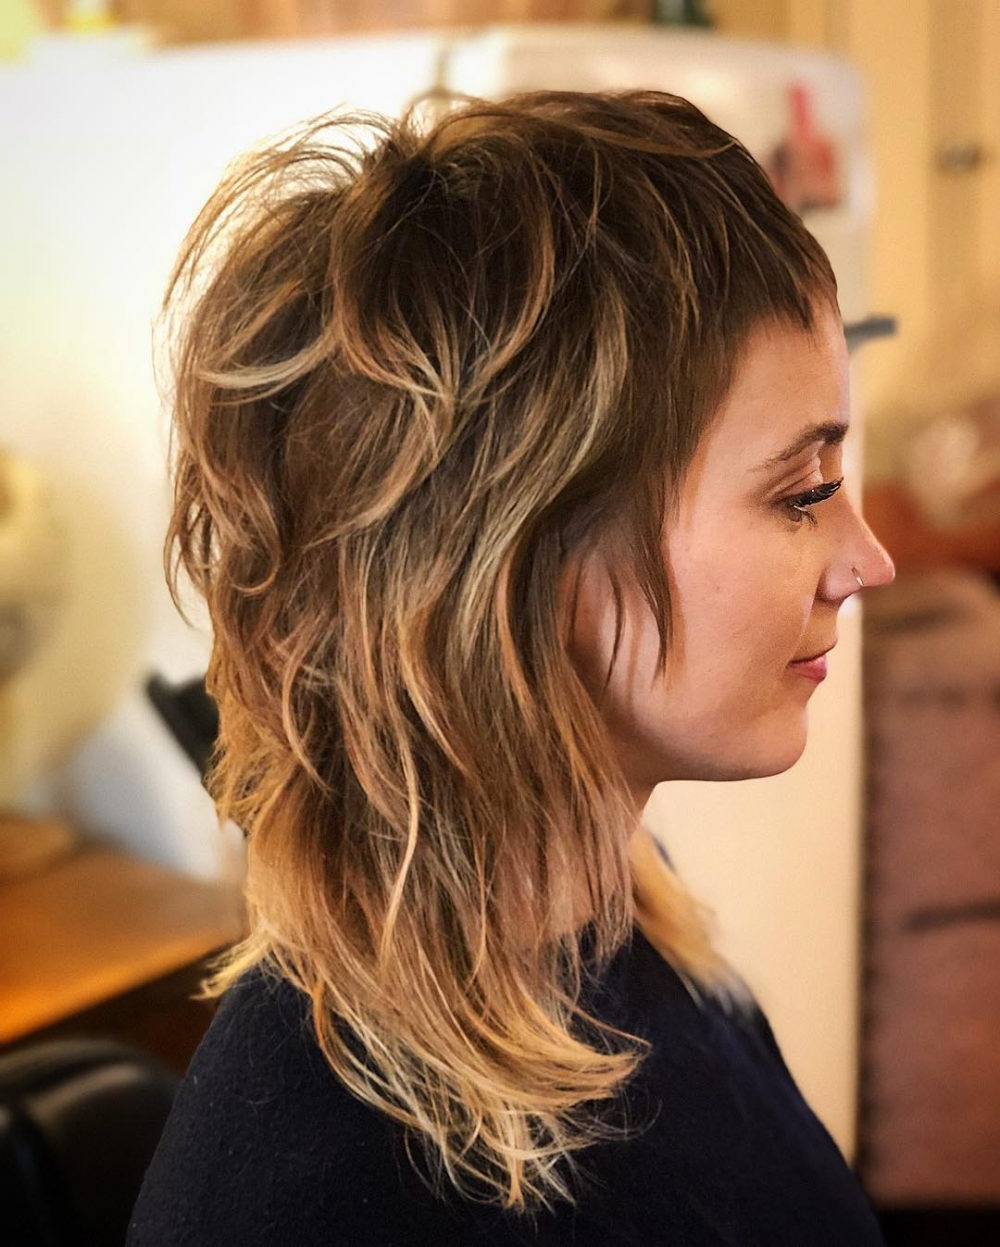 34 Short Bangs That Are Totally Hot In 2019 For Preferred Short Bangs Medium Hairstyles (View 15 of 20)